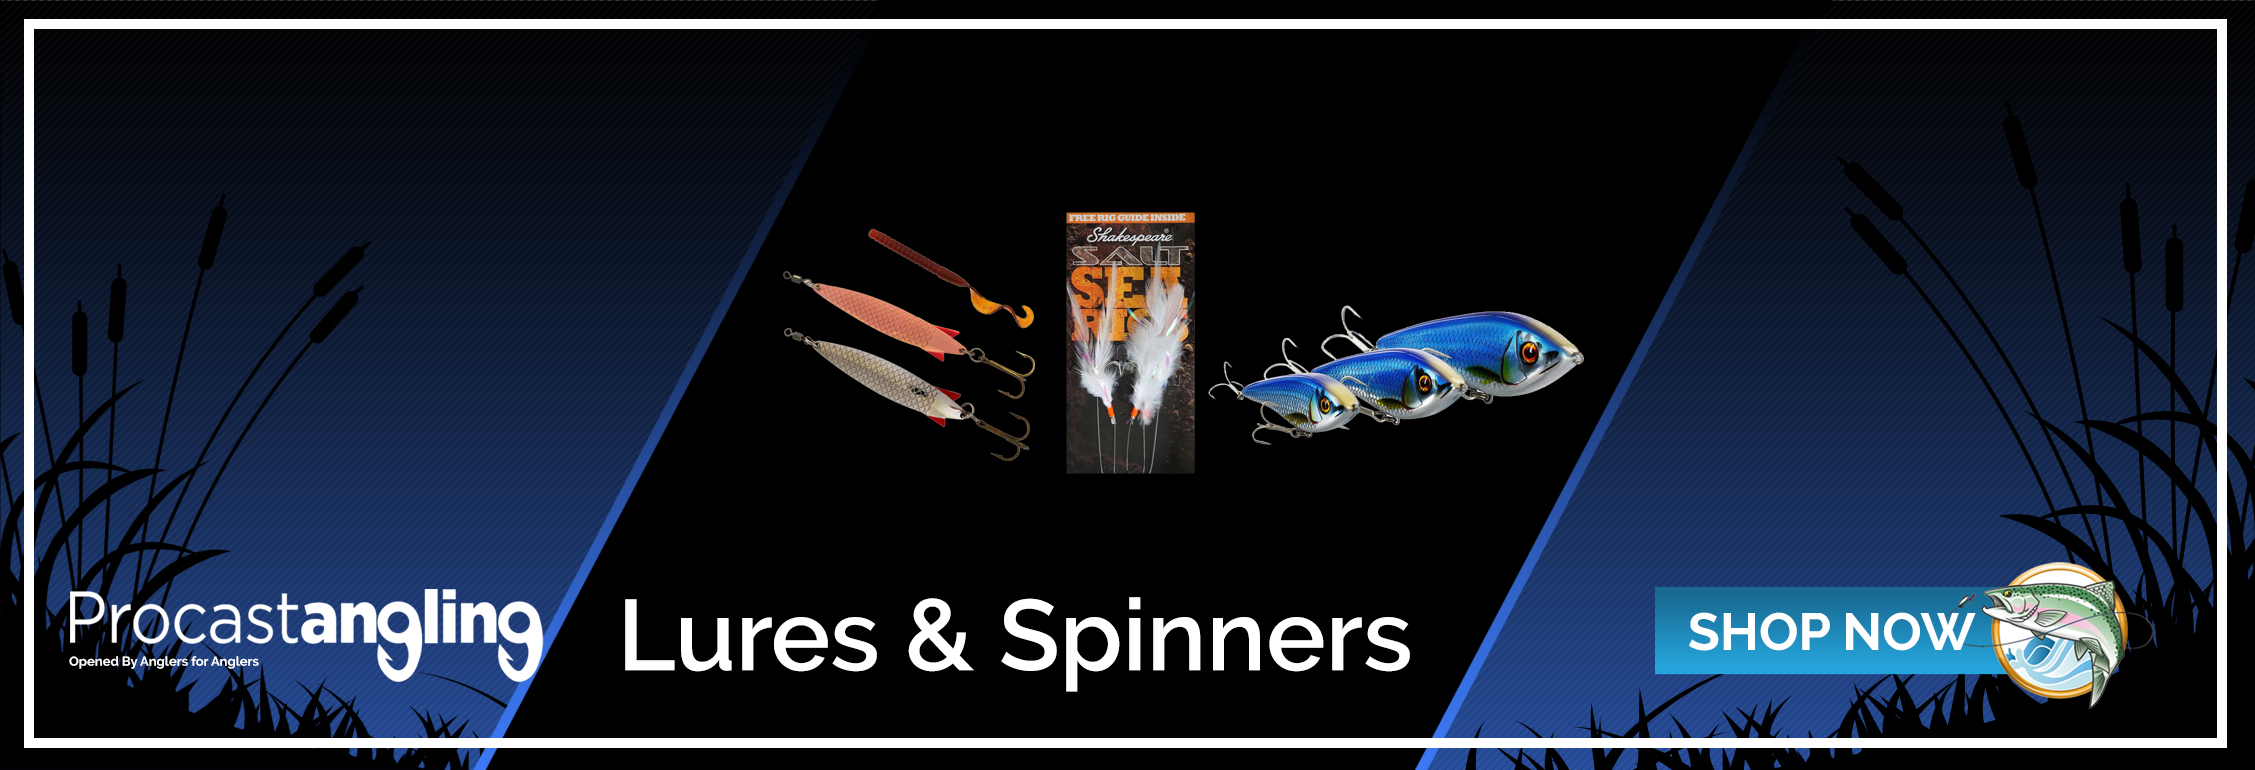 LURES & SPINNERS